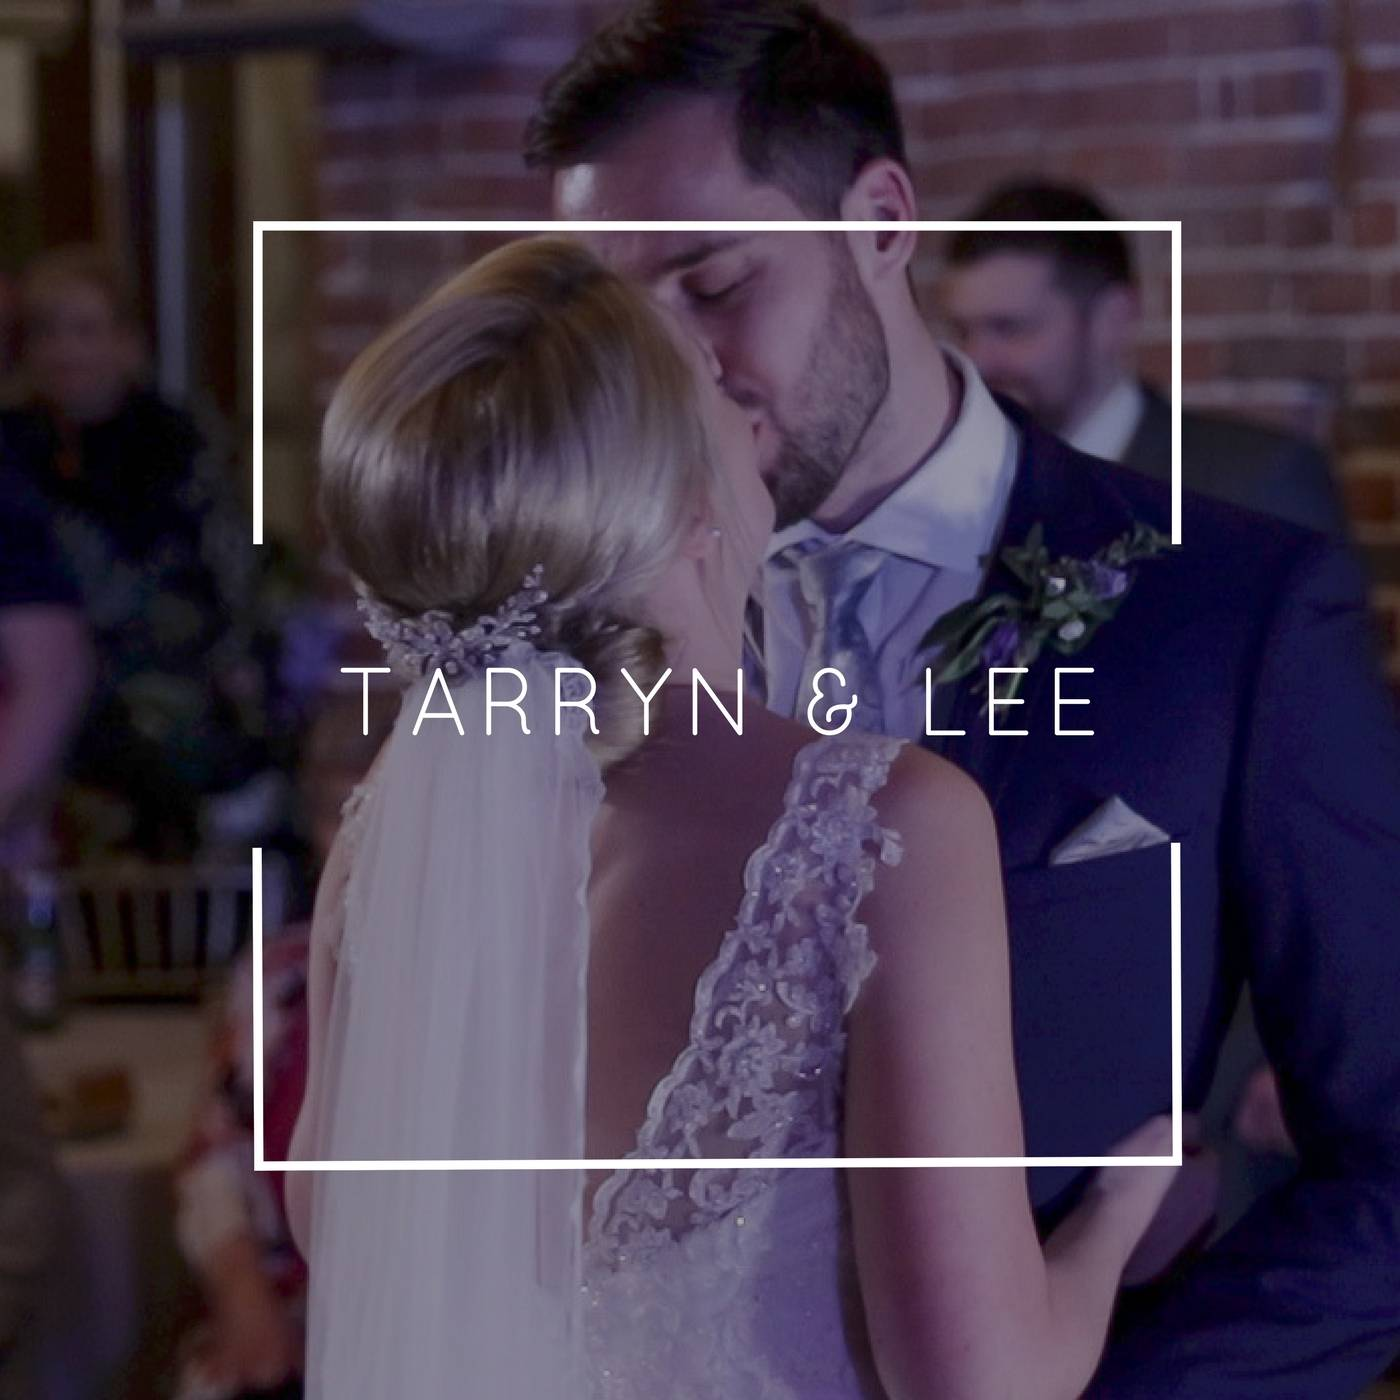 Tarryn and Lee Wedding Film by Veiled Productions - wedding videographer Oxfordshire